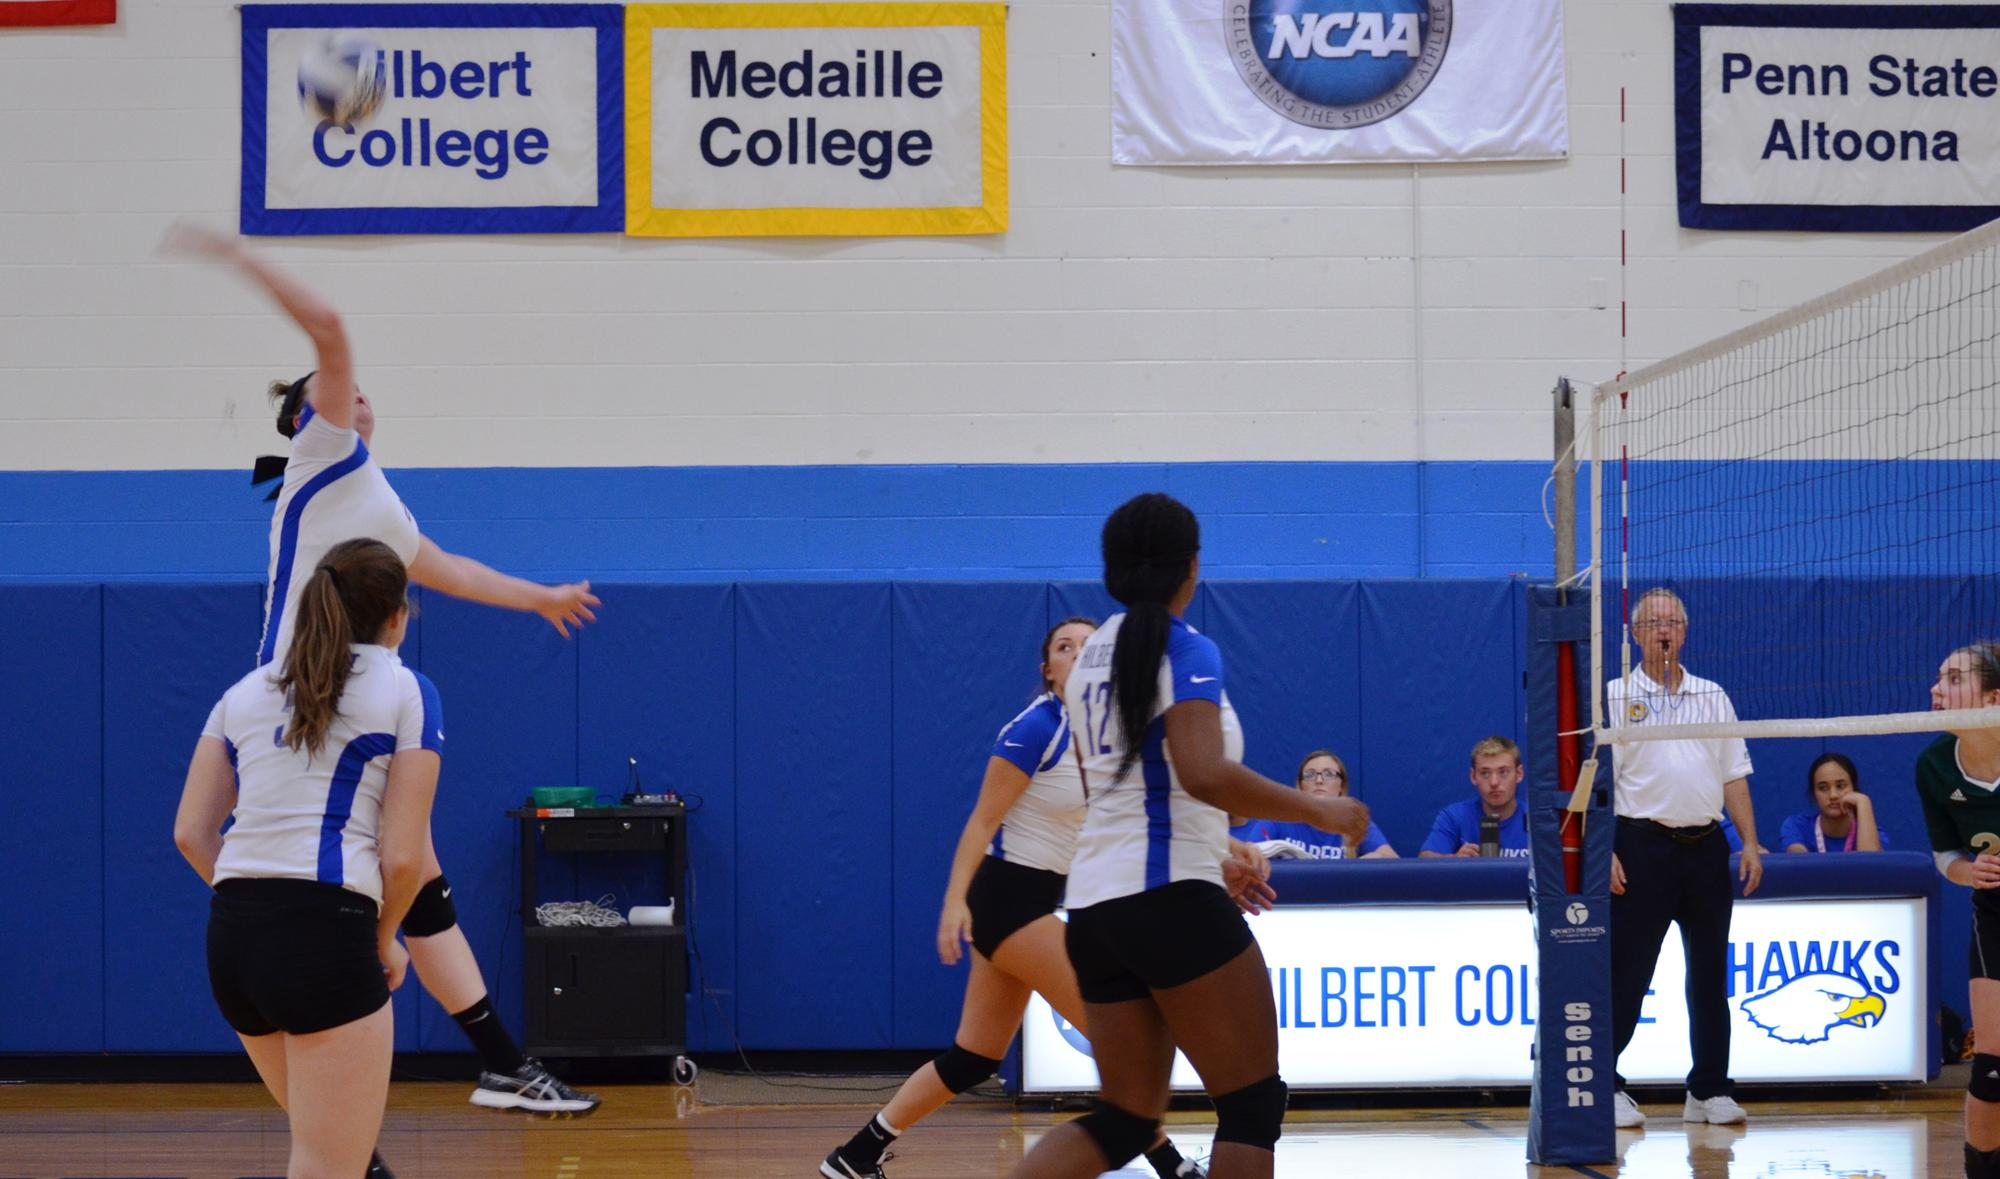 hilbert women The hilbert college (21-6) women's basketball team made program history when they won their first amcc title on sunday afternoon by defeating mount aloysius college (17-8) 76-52.